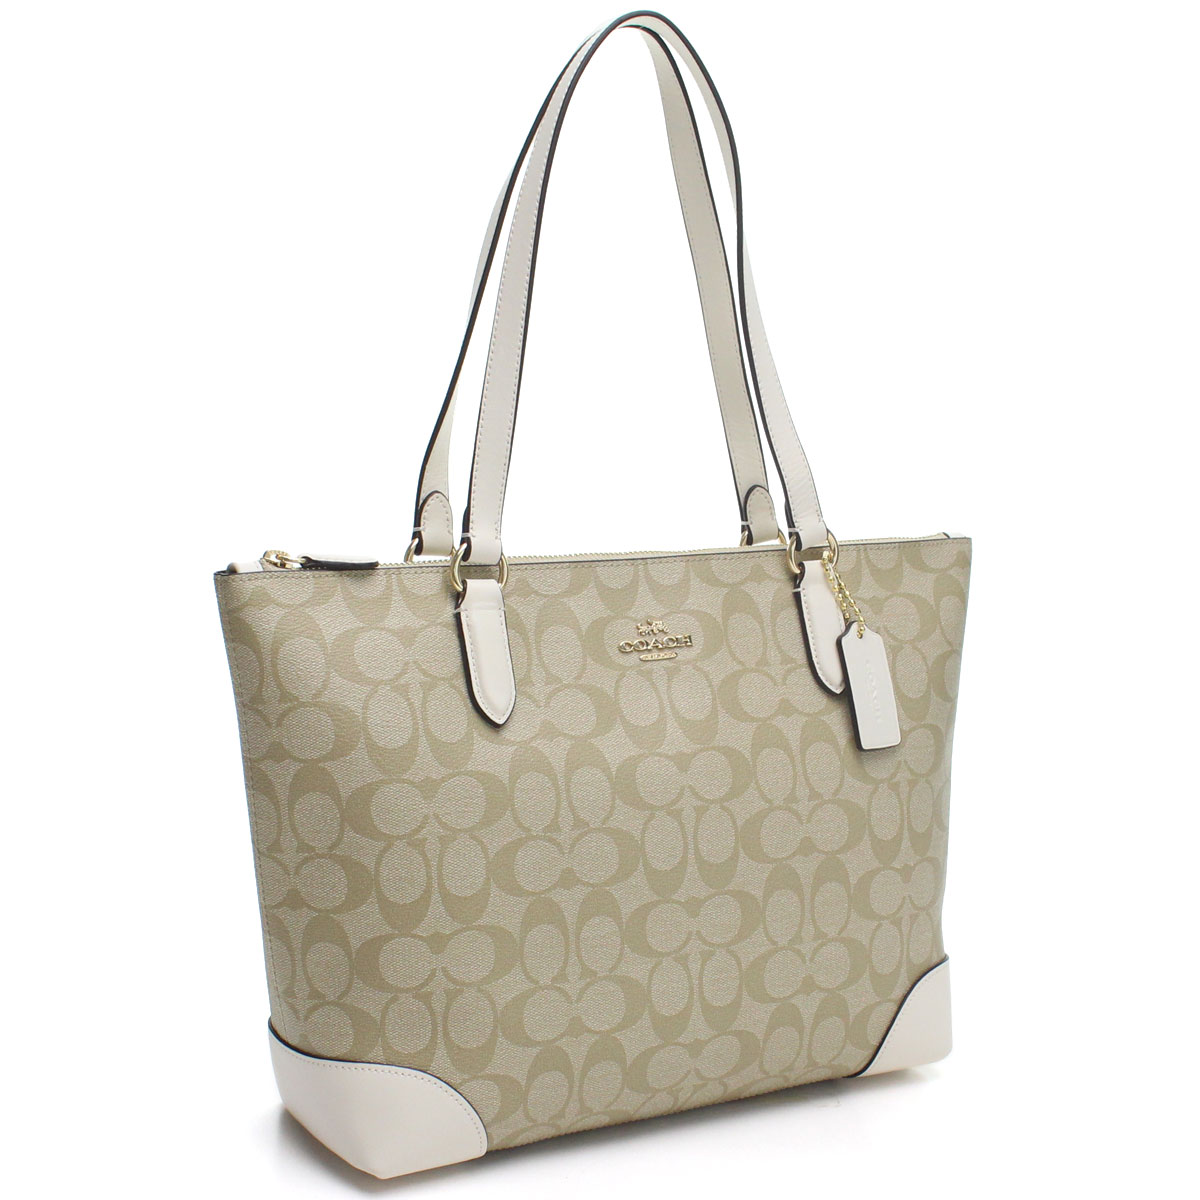 b0afcc49b570 Bighit The total brand wholesale  Coach COACH PVC coating canvas signature  tote bag F29208 IMDQC beige system white system